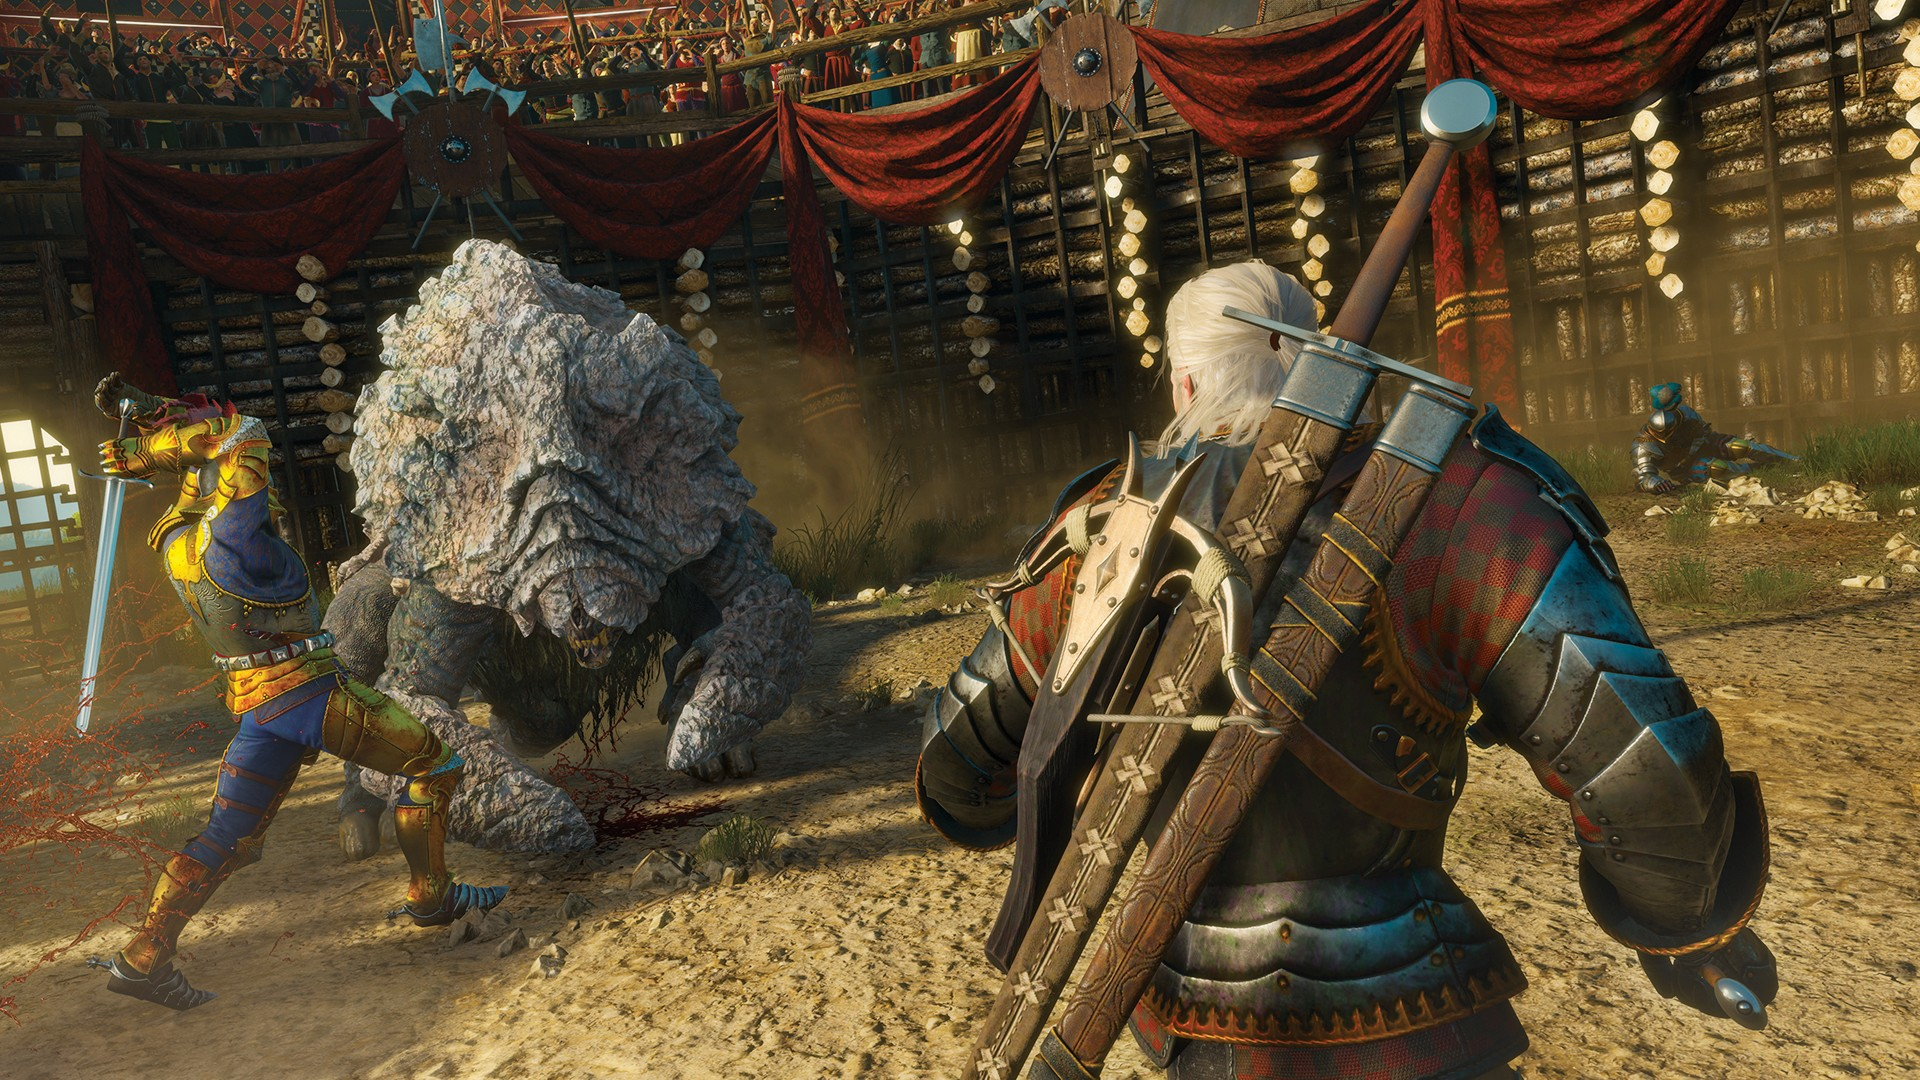 Witcher 3 Blood And Wine Launch Trailer Sets Up Geralts Final Hunt The Witcher 3 Wild Hunt Blood and Wine Sleep tight